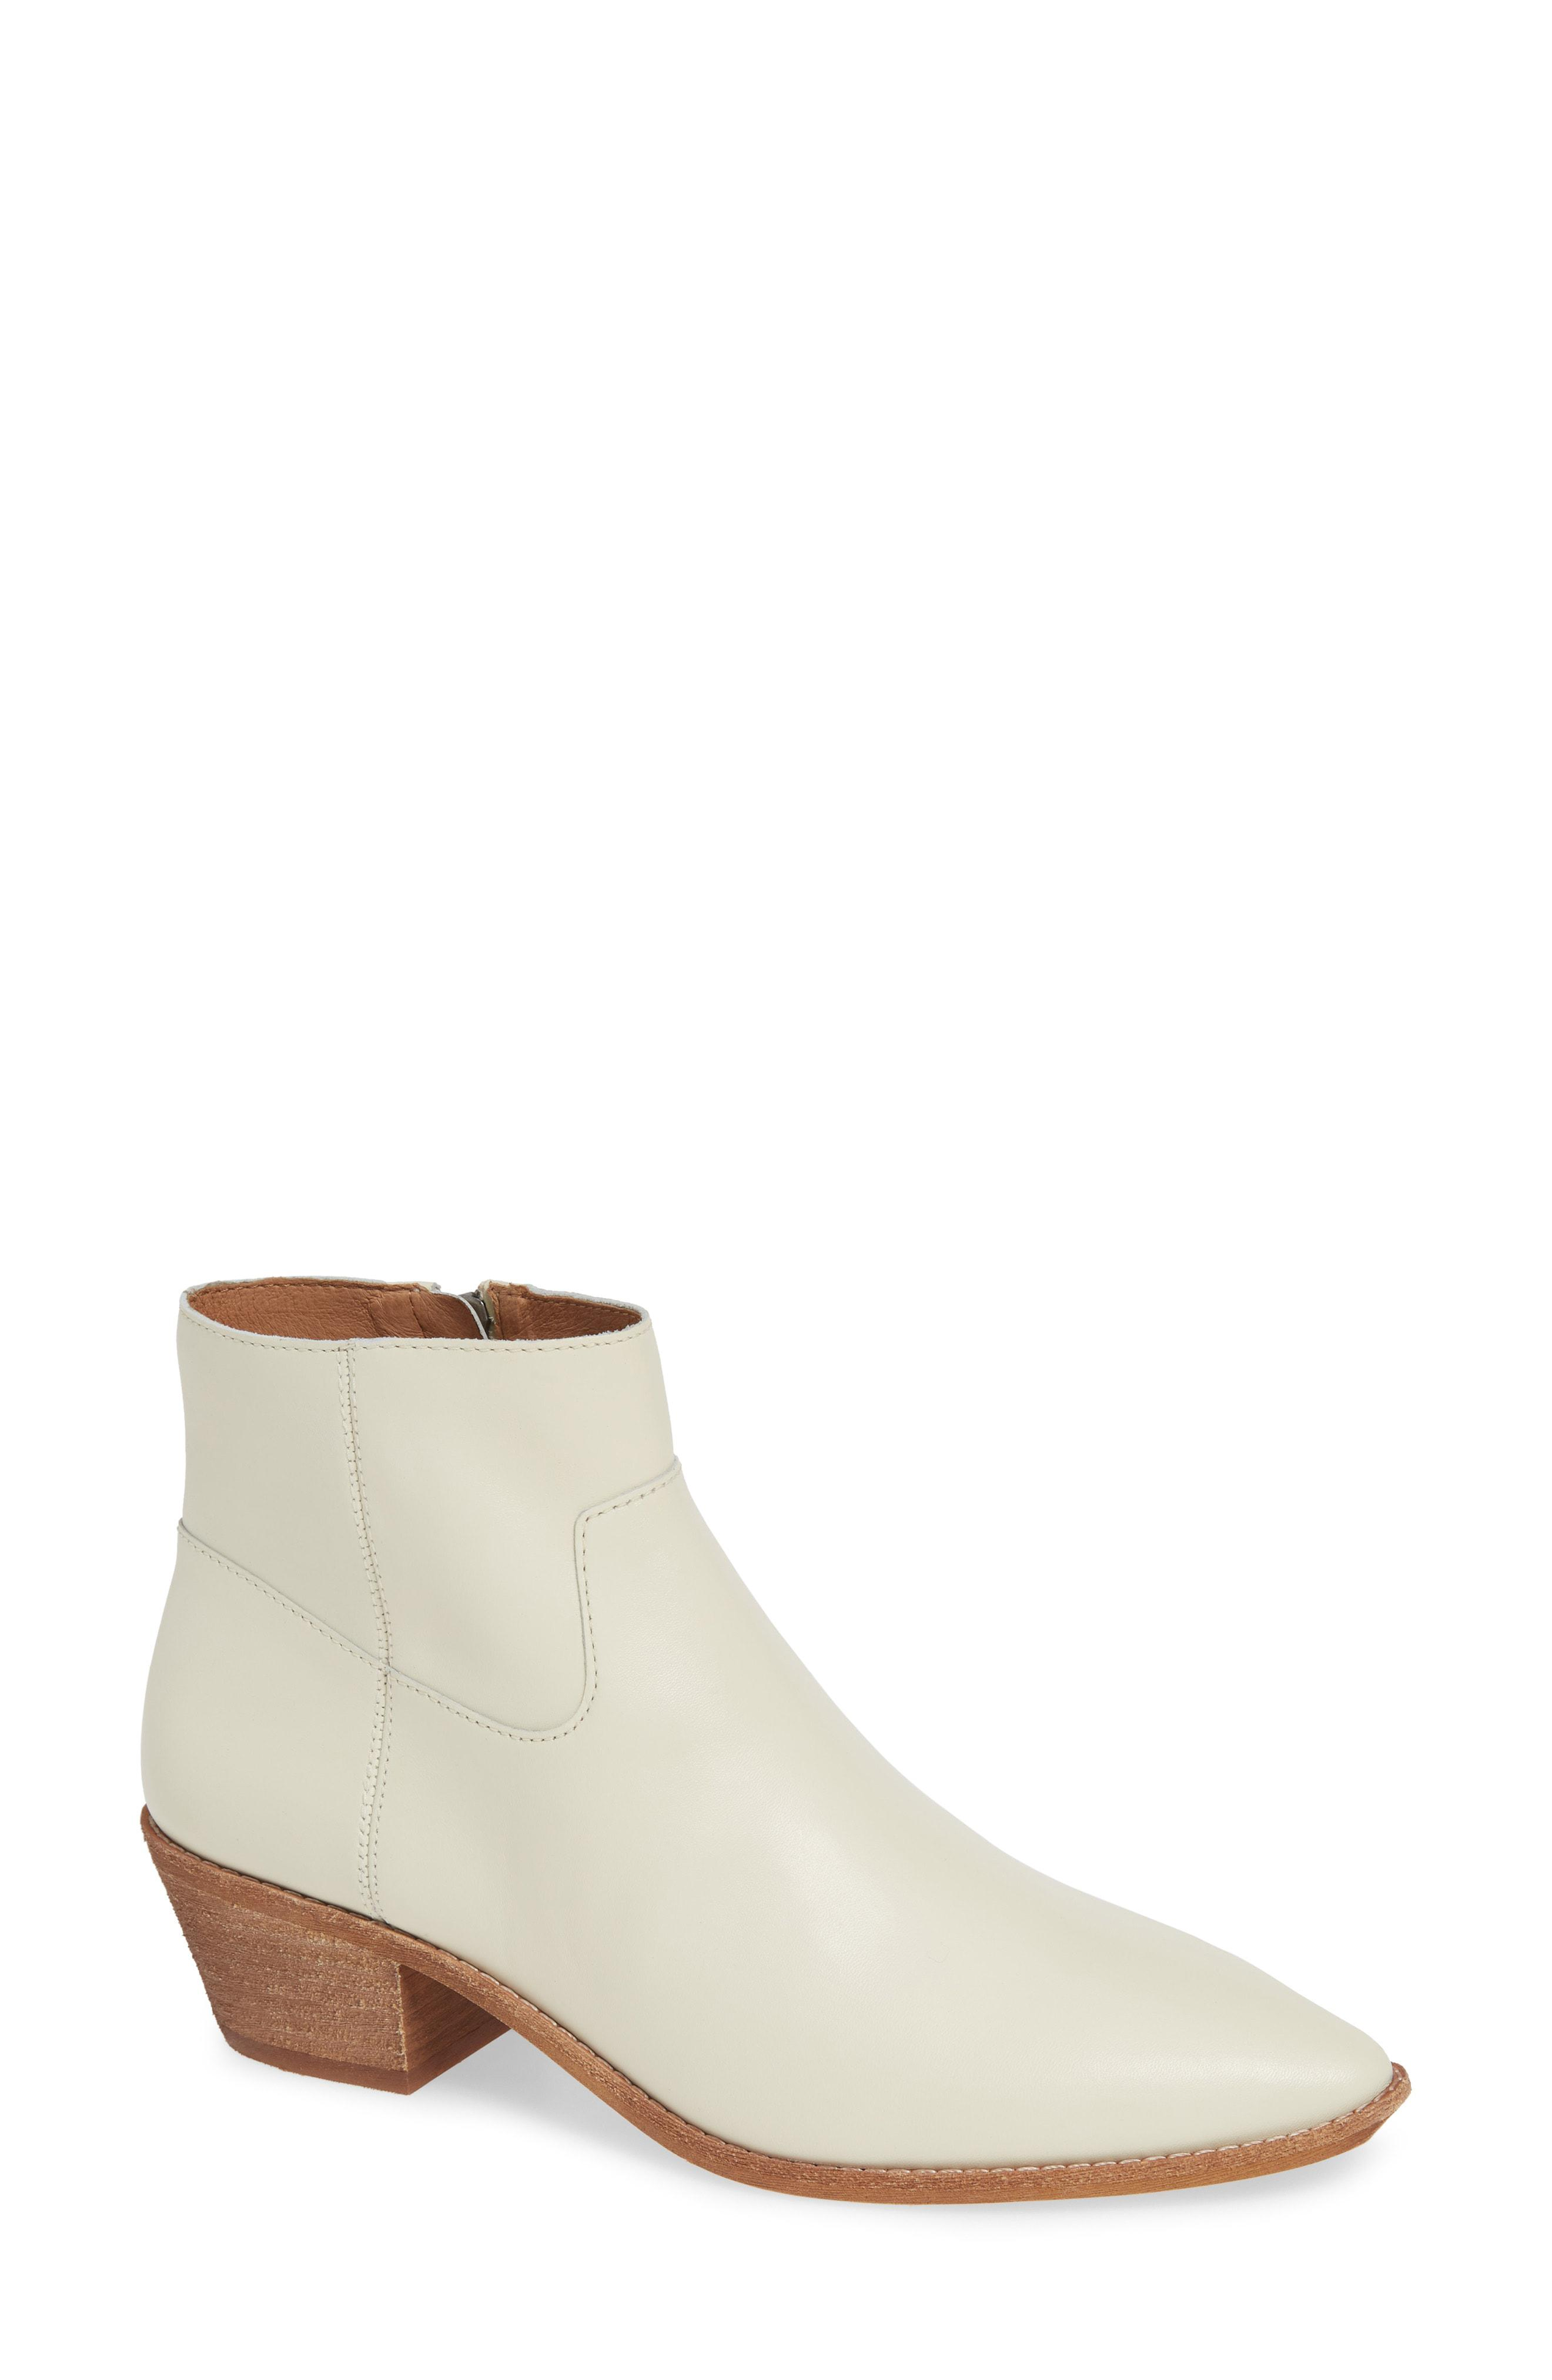 Madewell The Charley Boot in Ivory